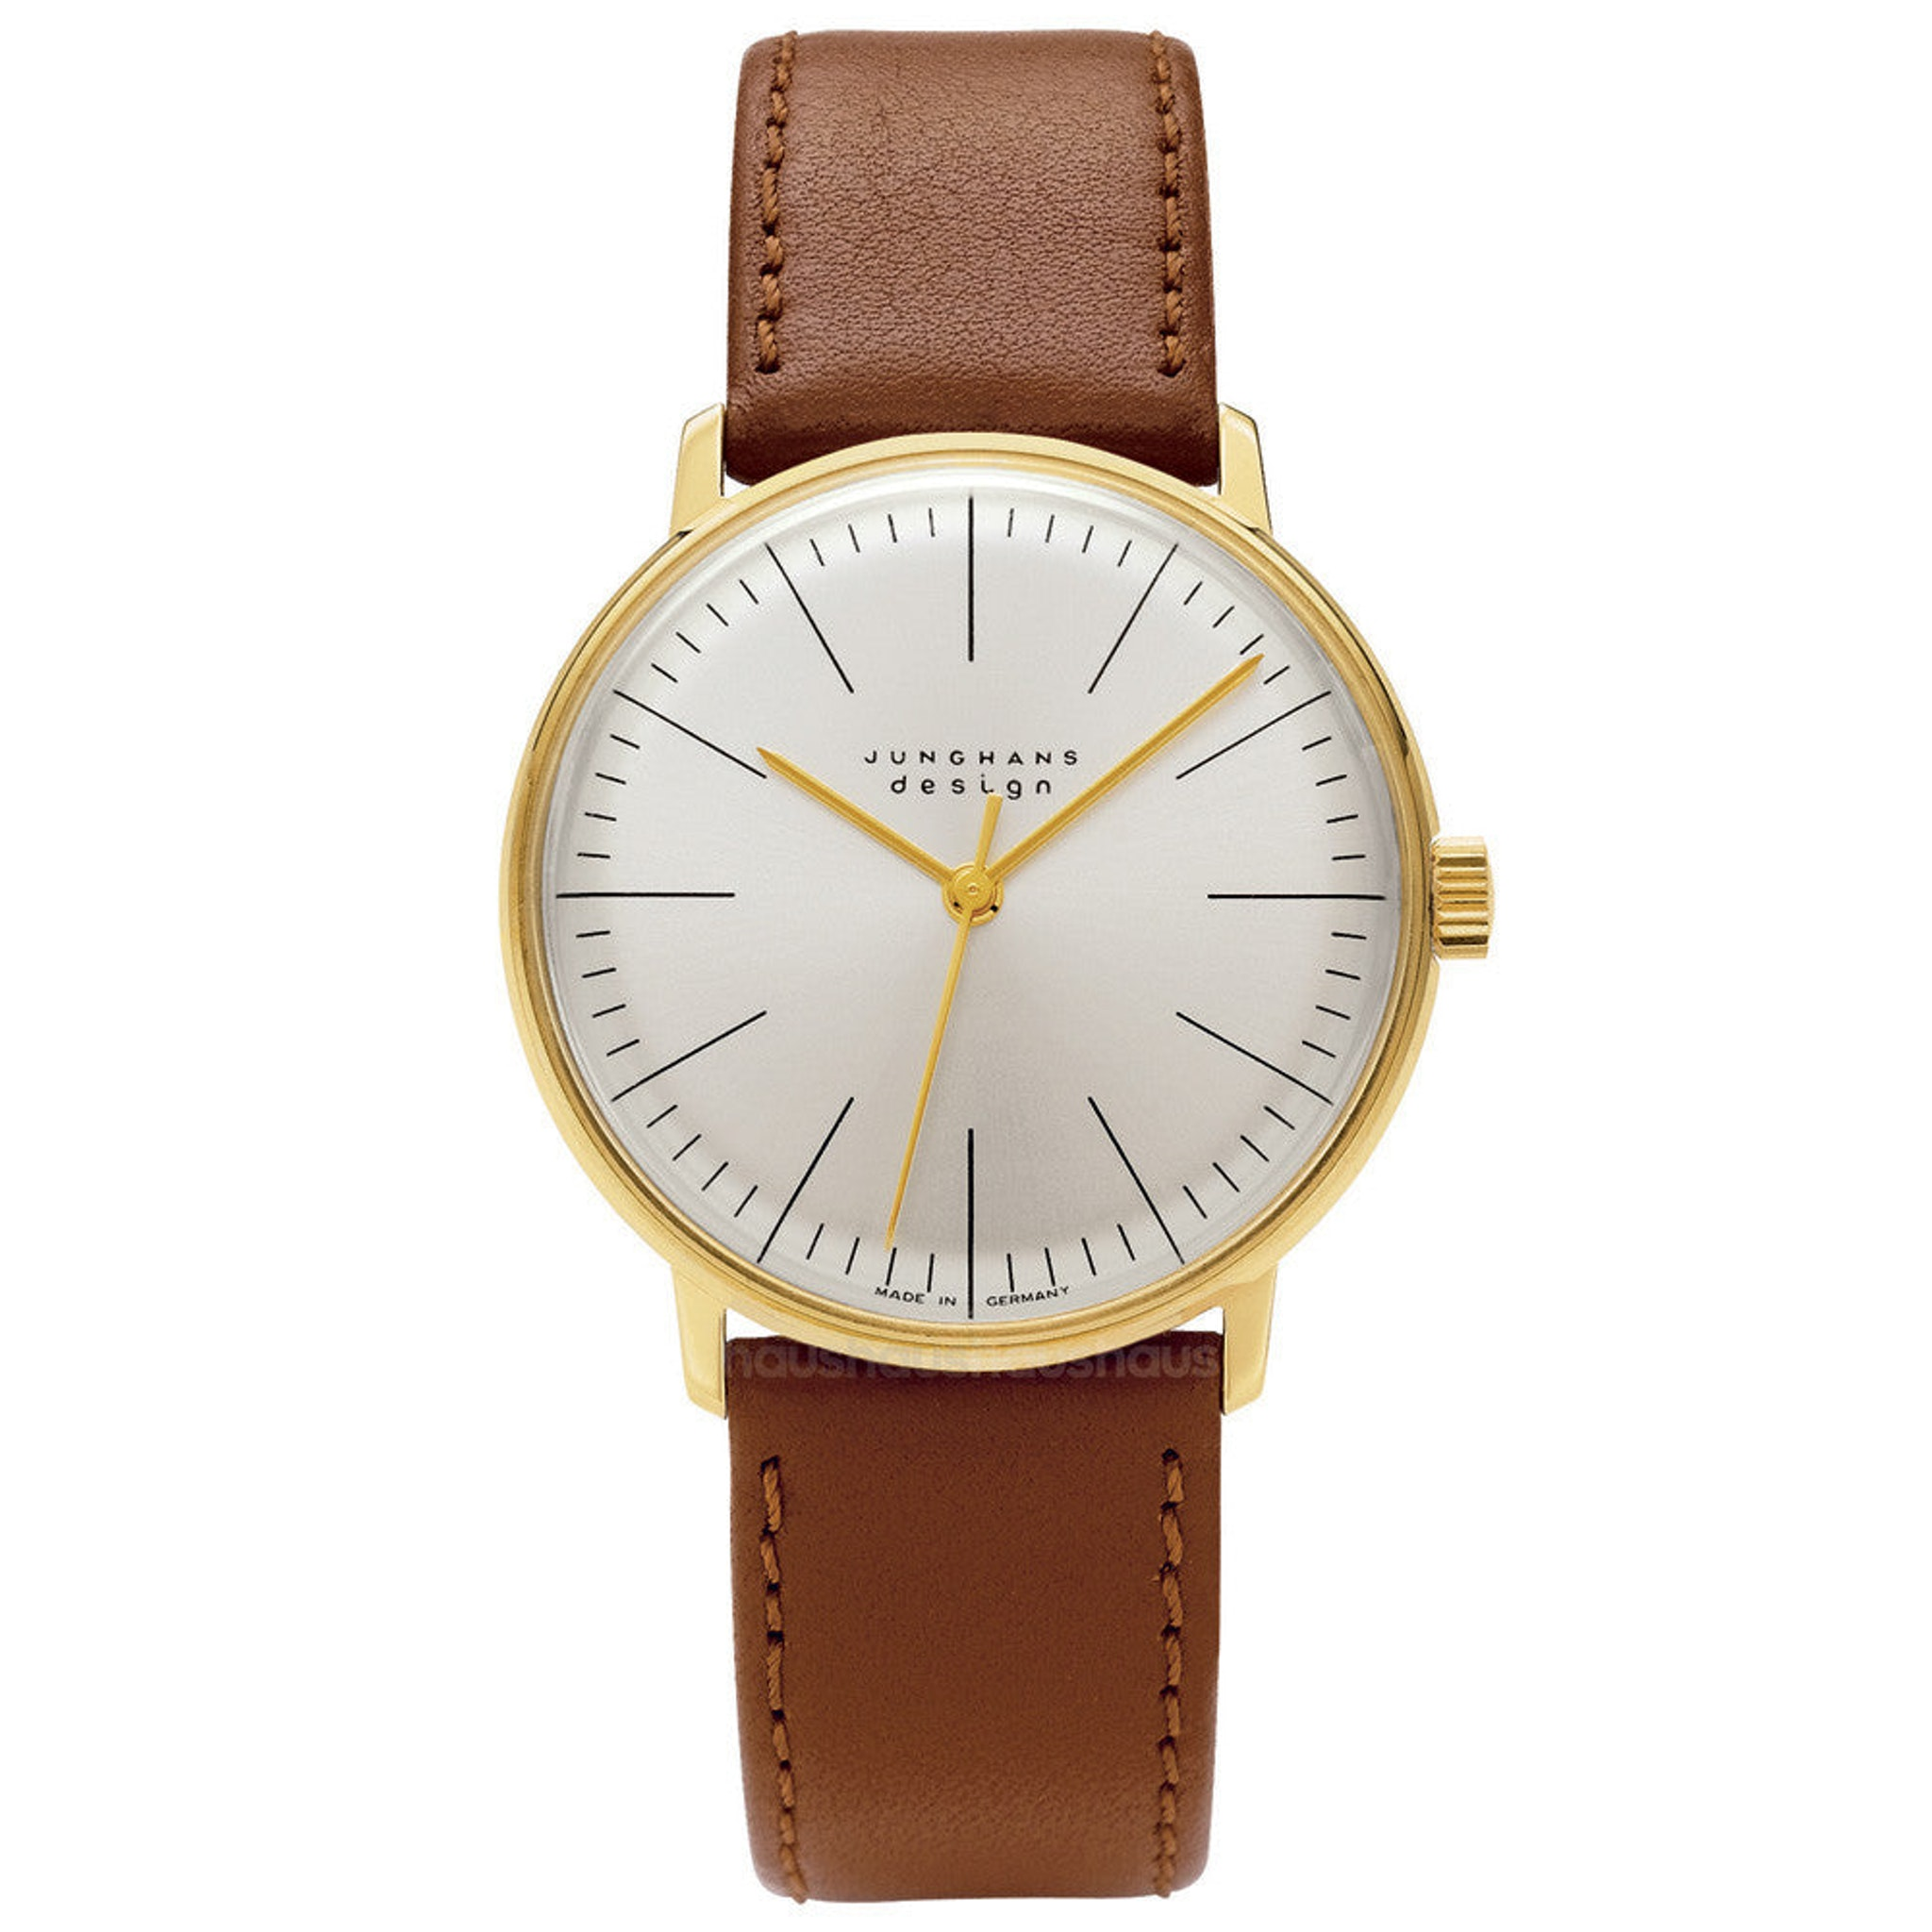 Max Bill 027/5703.00 Handwinding watch by Junghans